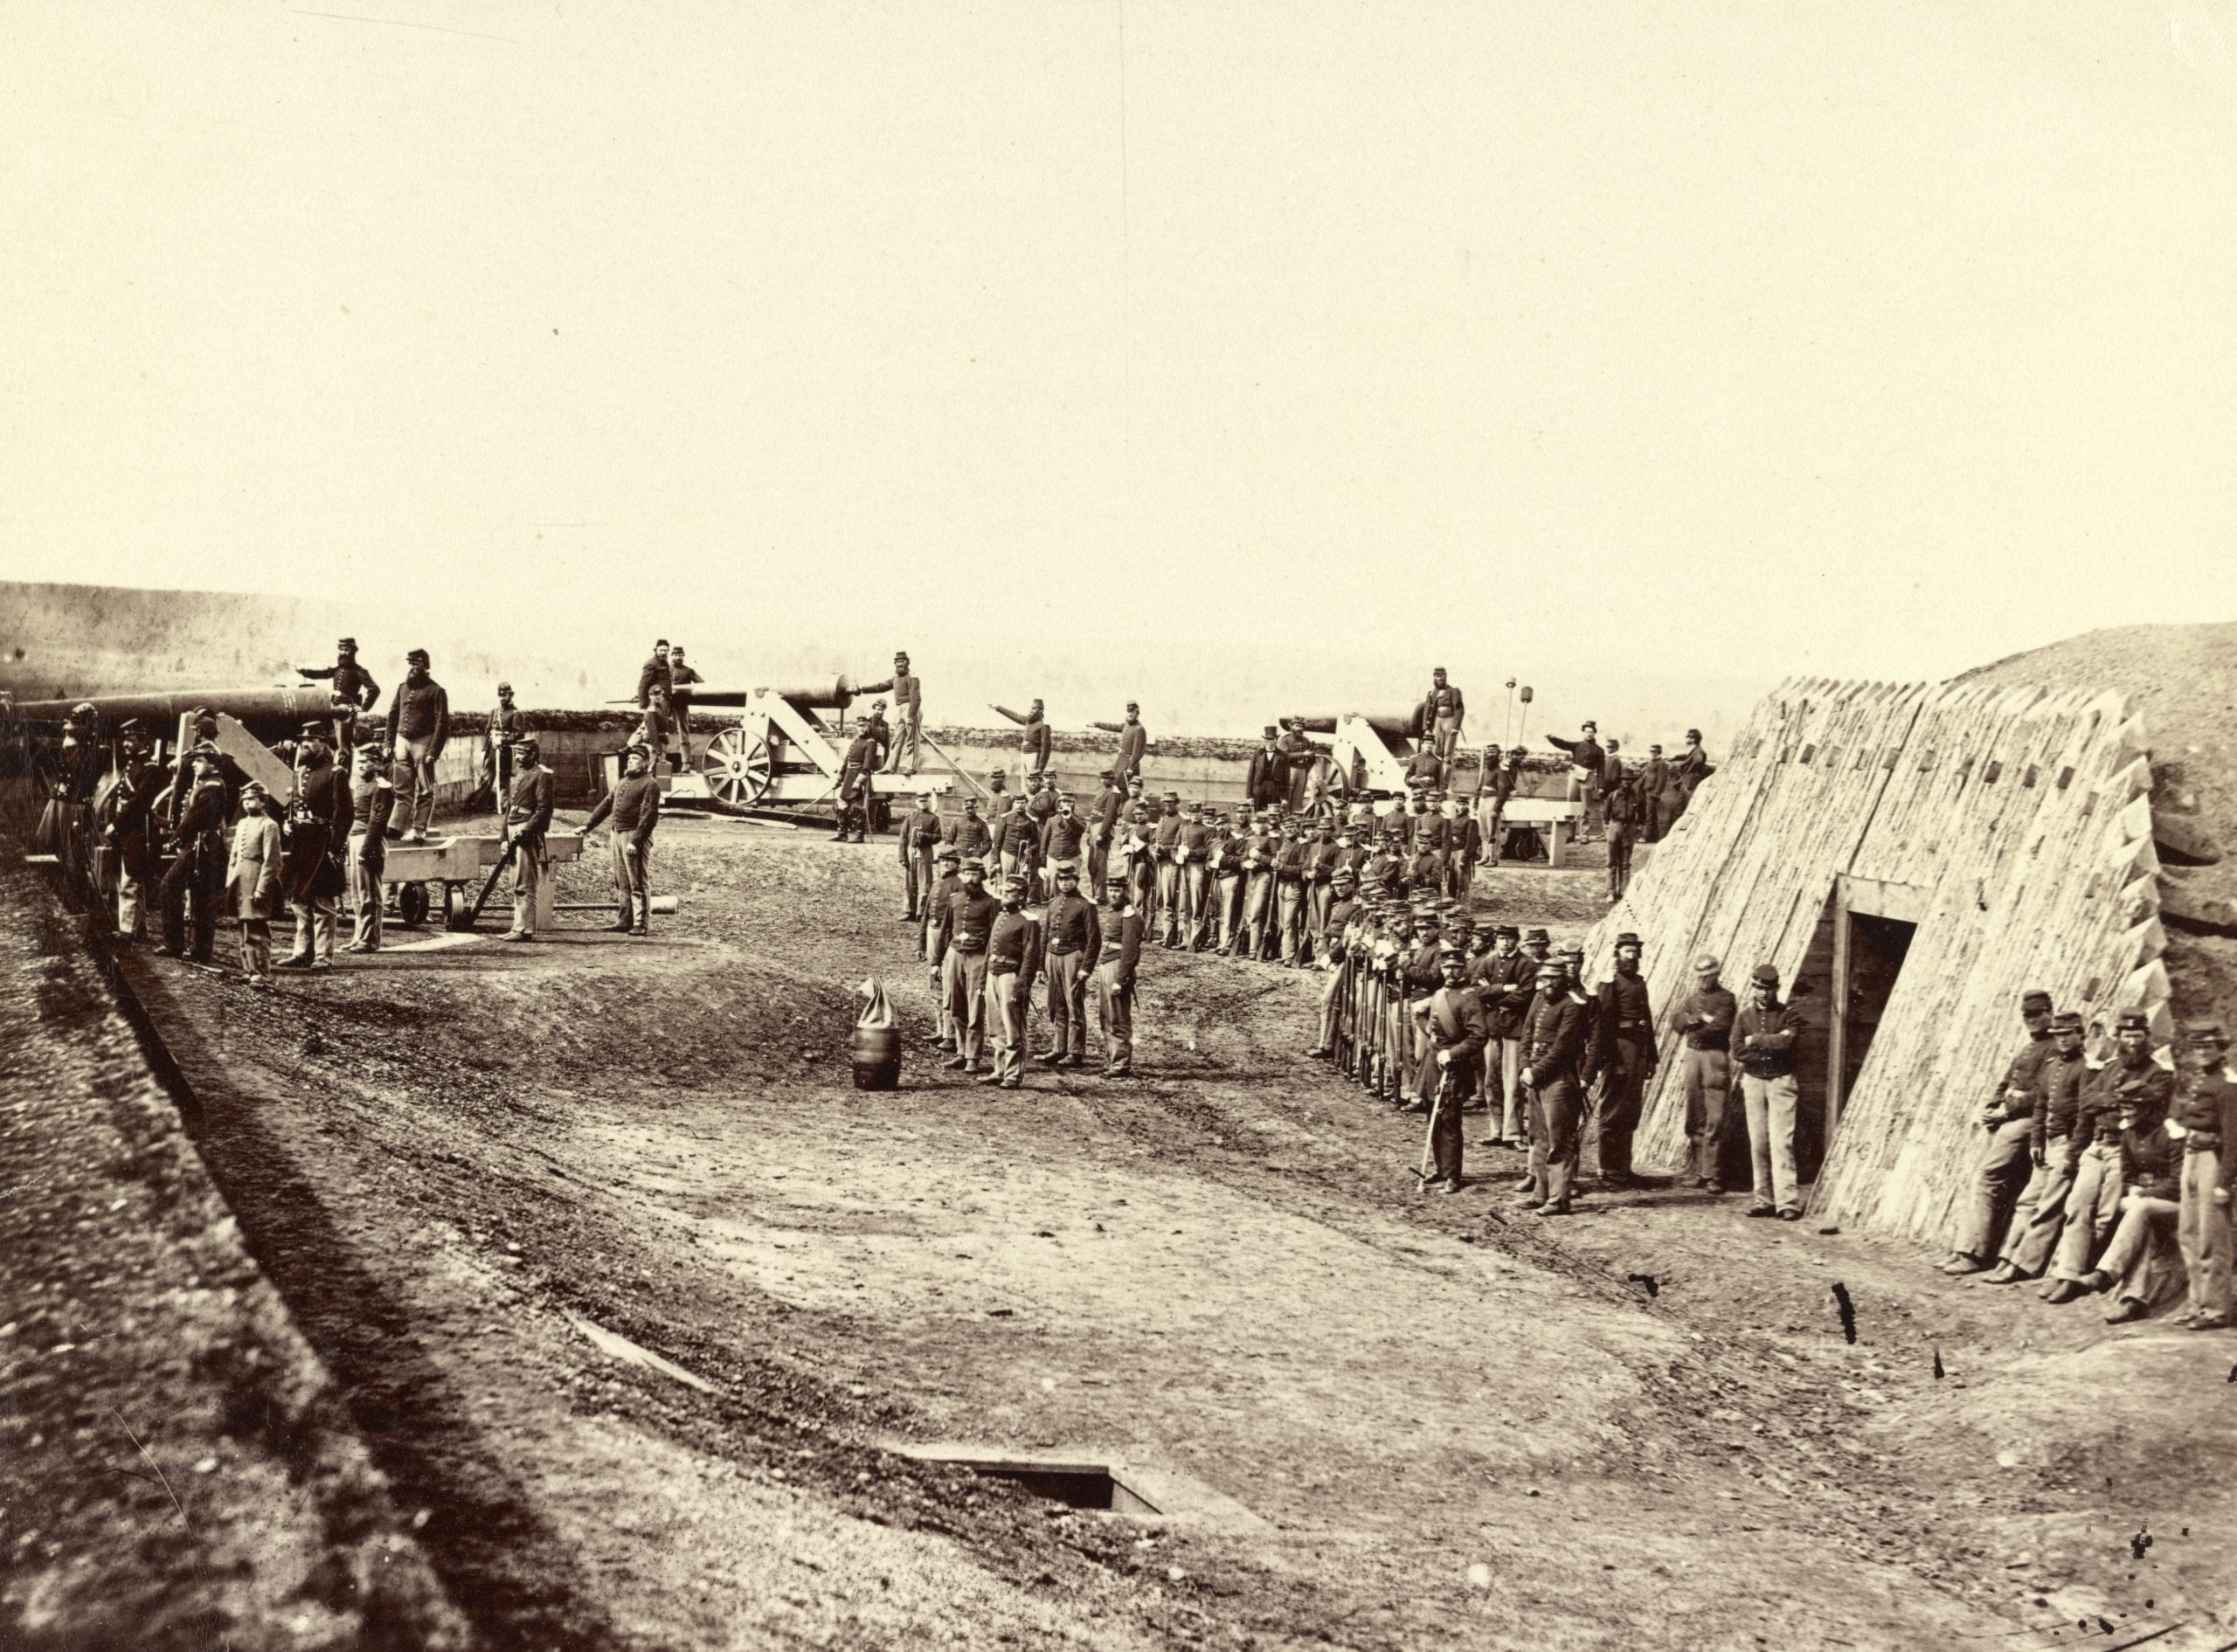 Fort Totten during the Civil War